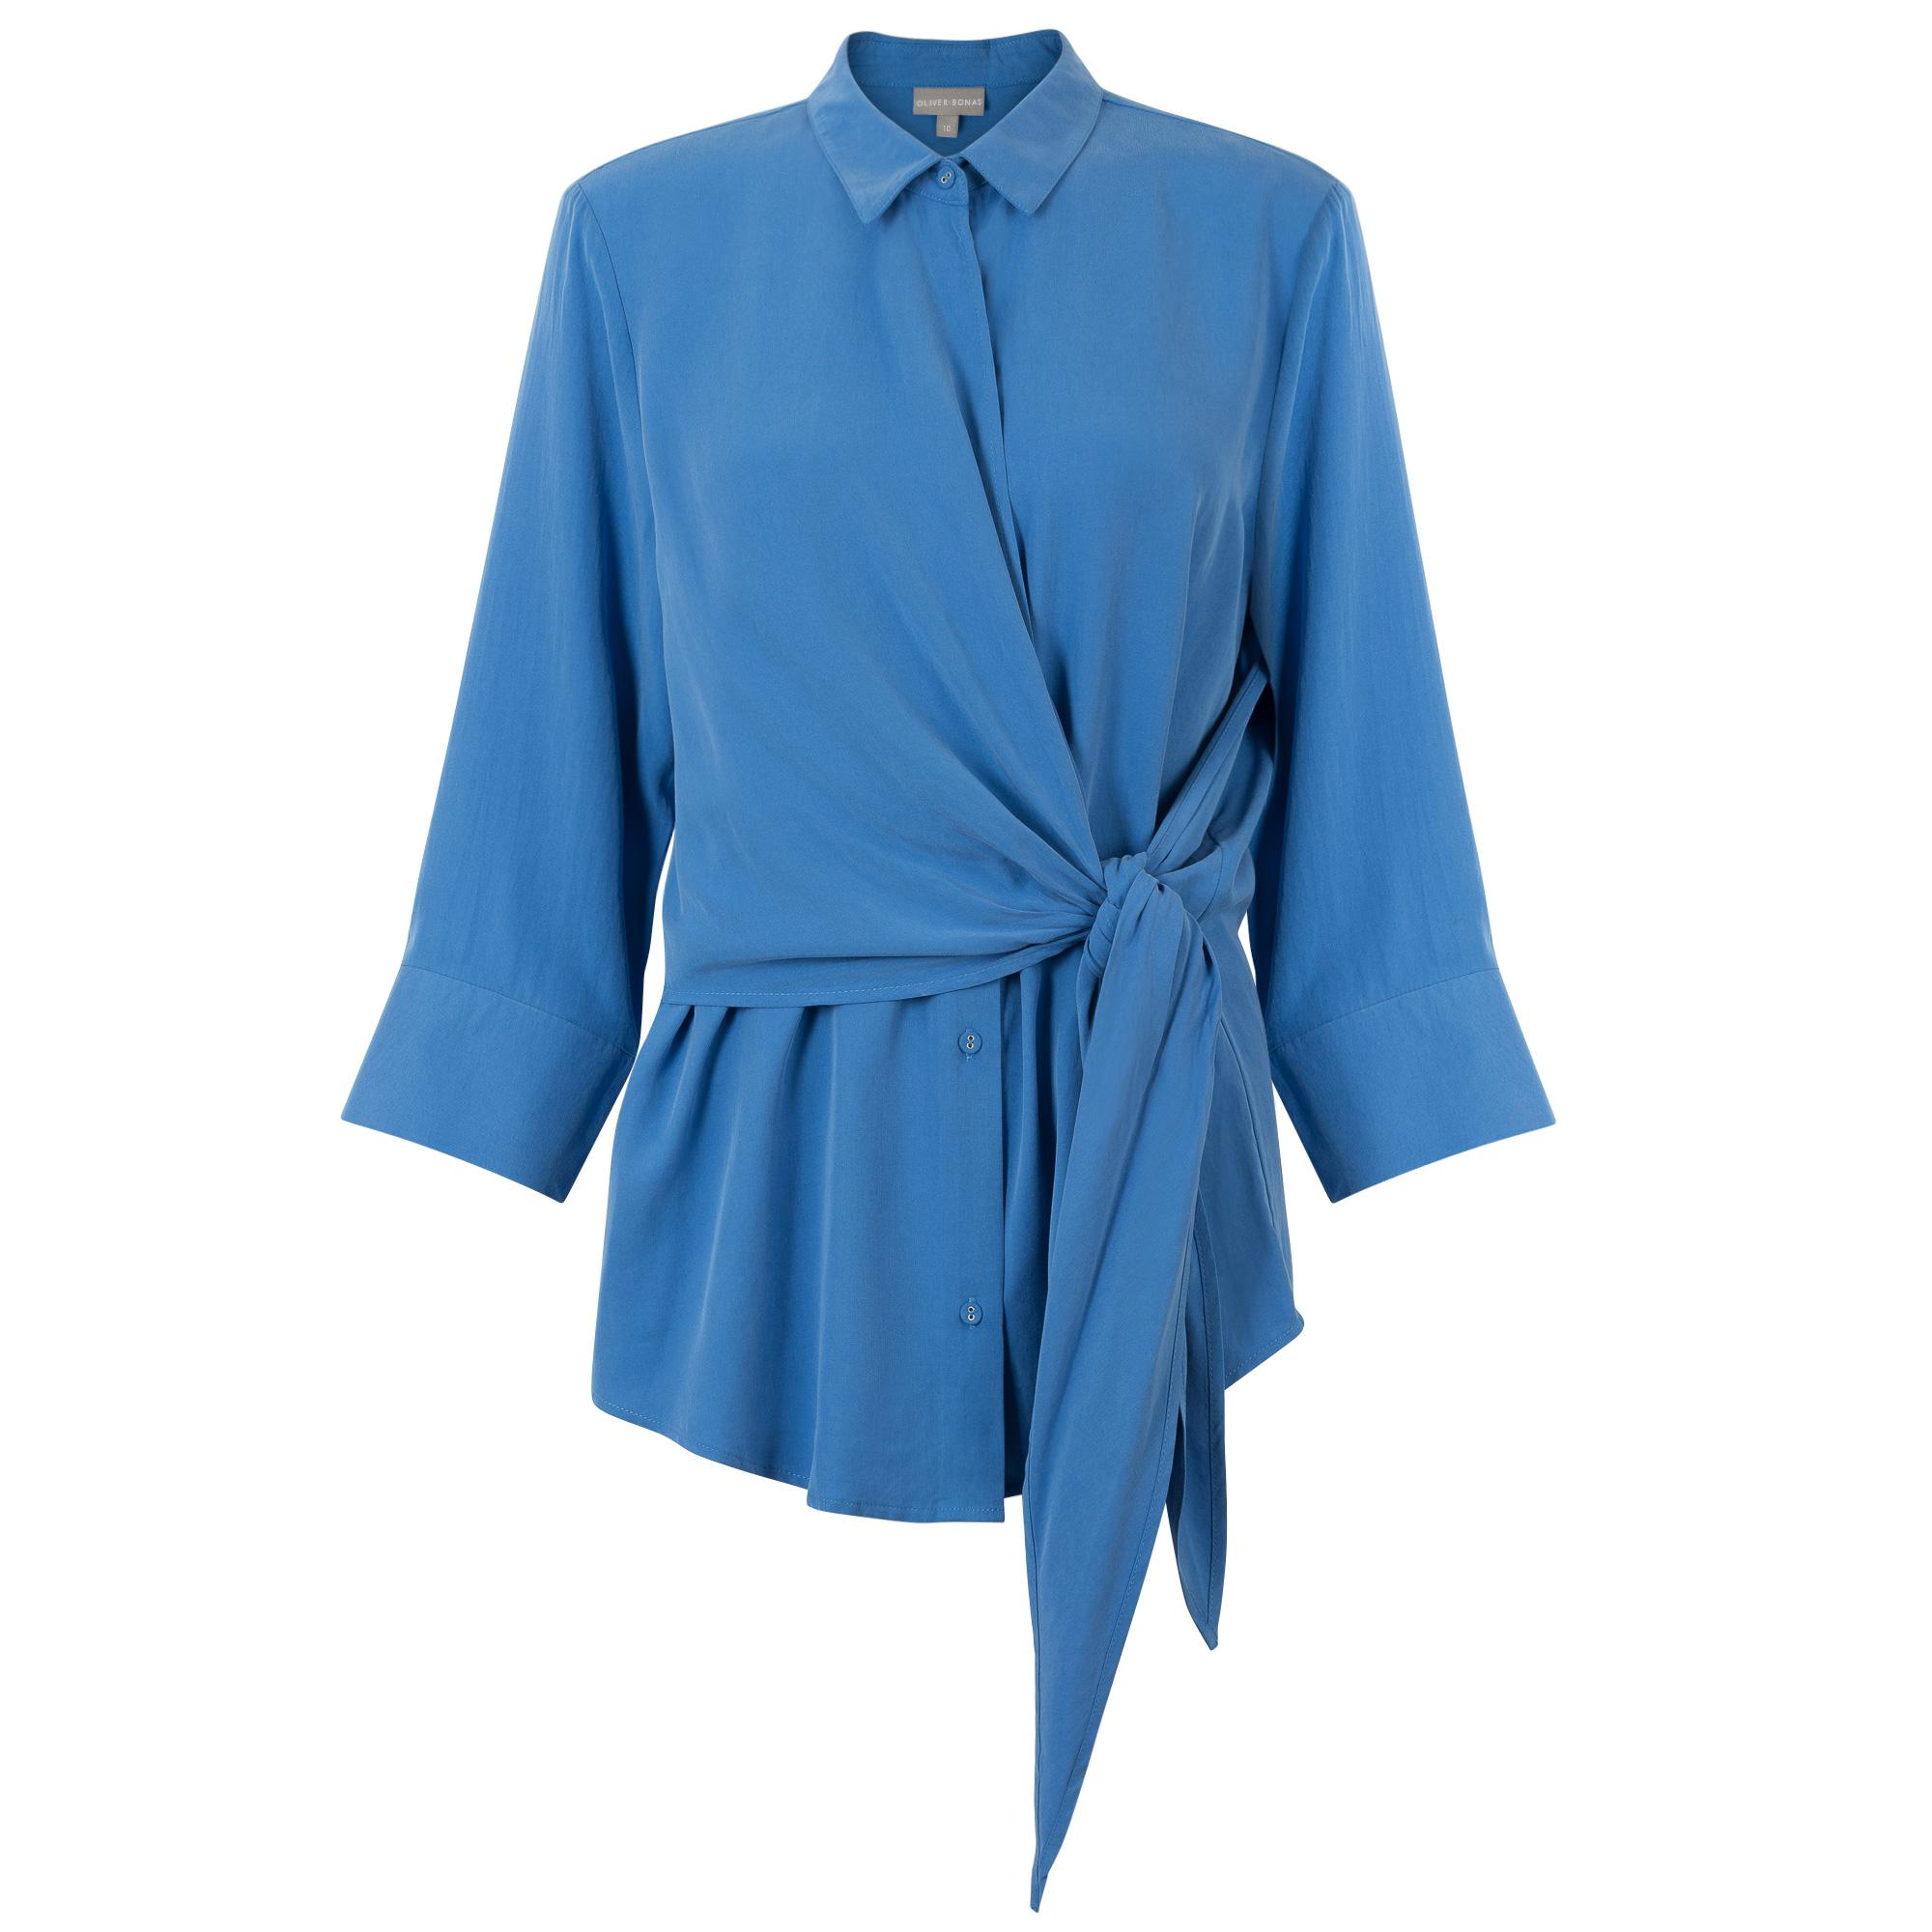 Lyst - Oliver Bonas Muted Tie Wrap Shirt in Blue